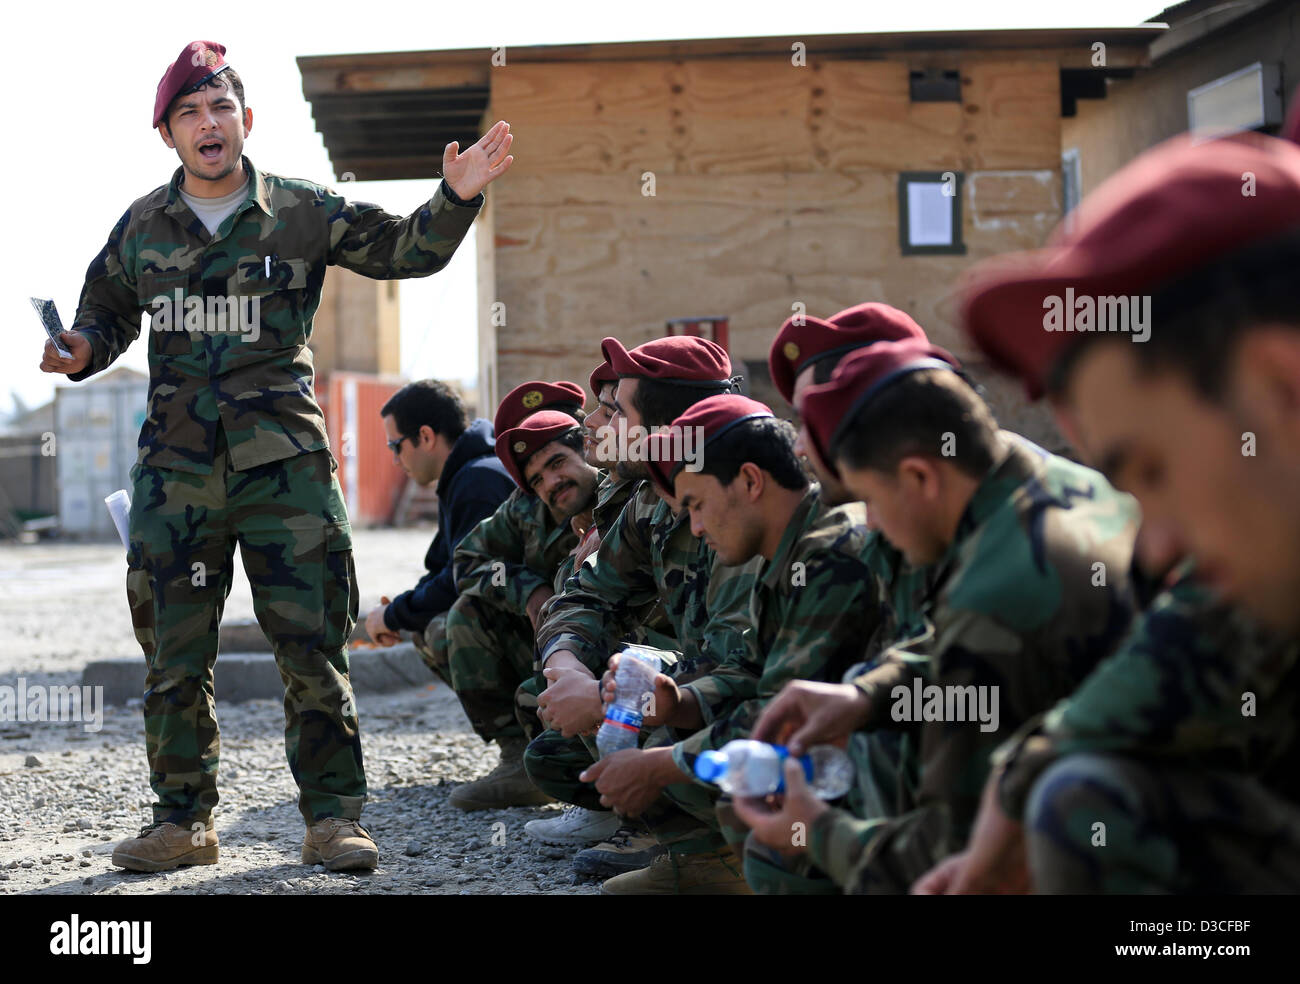 An Afghan National Army commando platoon sergeant briefs soldiers before training exercises February 11, 2-13 drills - Stock Image